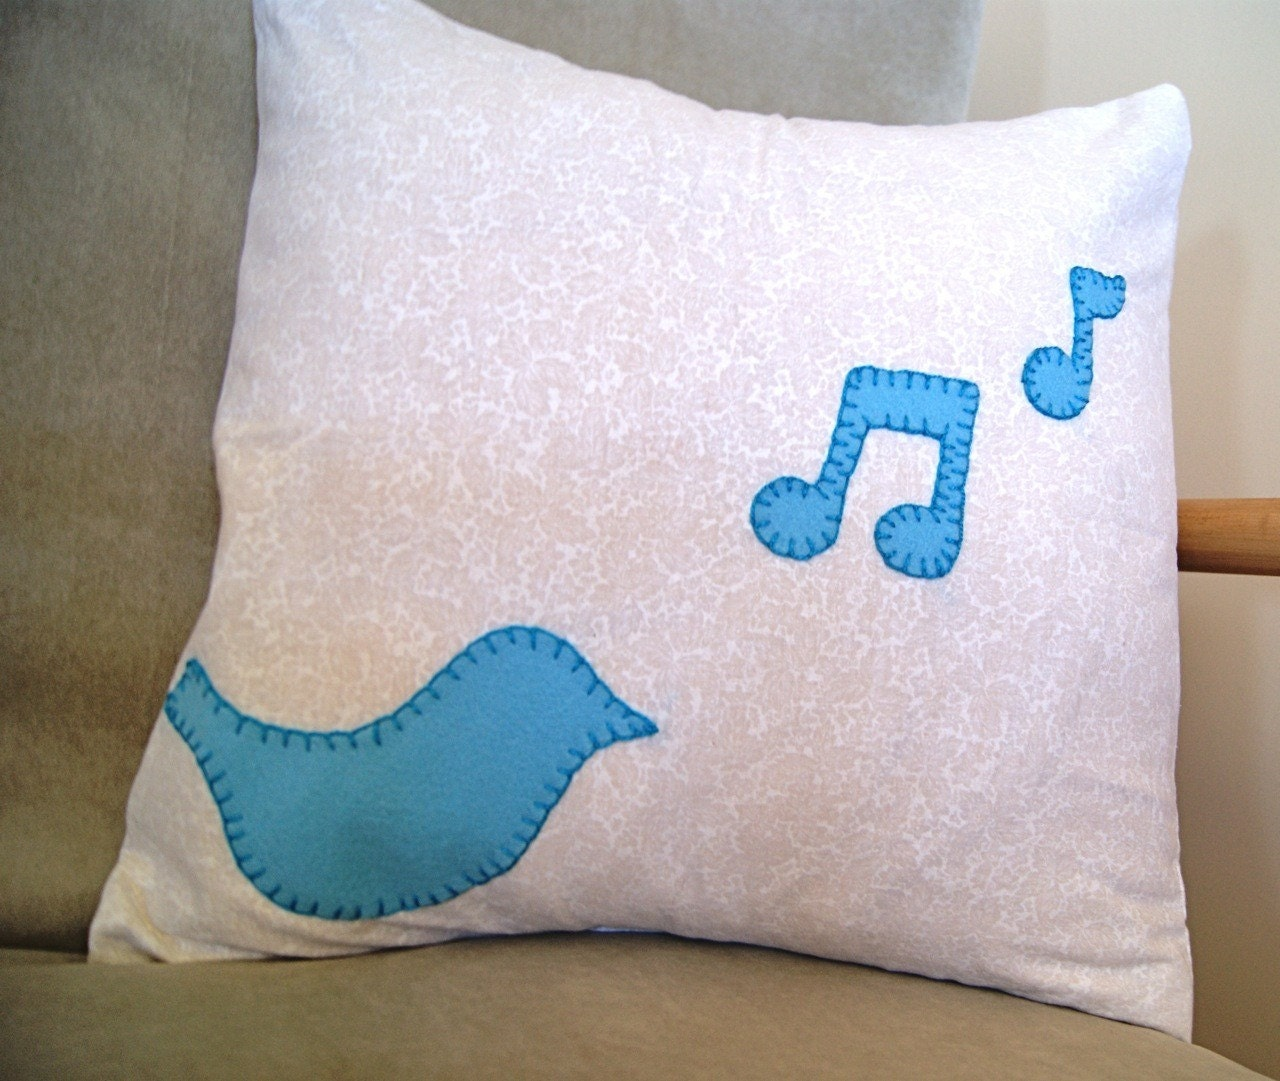 Bluebird Singing Pillow Cover, 16 by 16 inch by newleafhandmade on Etsy